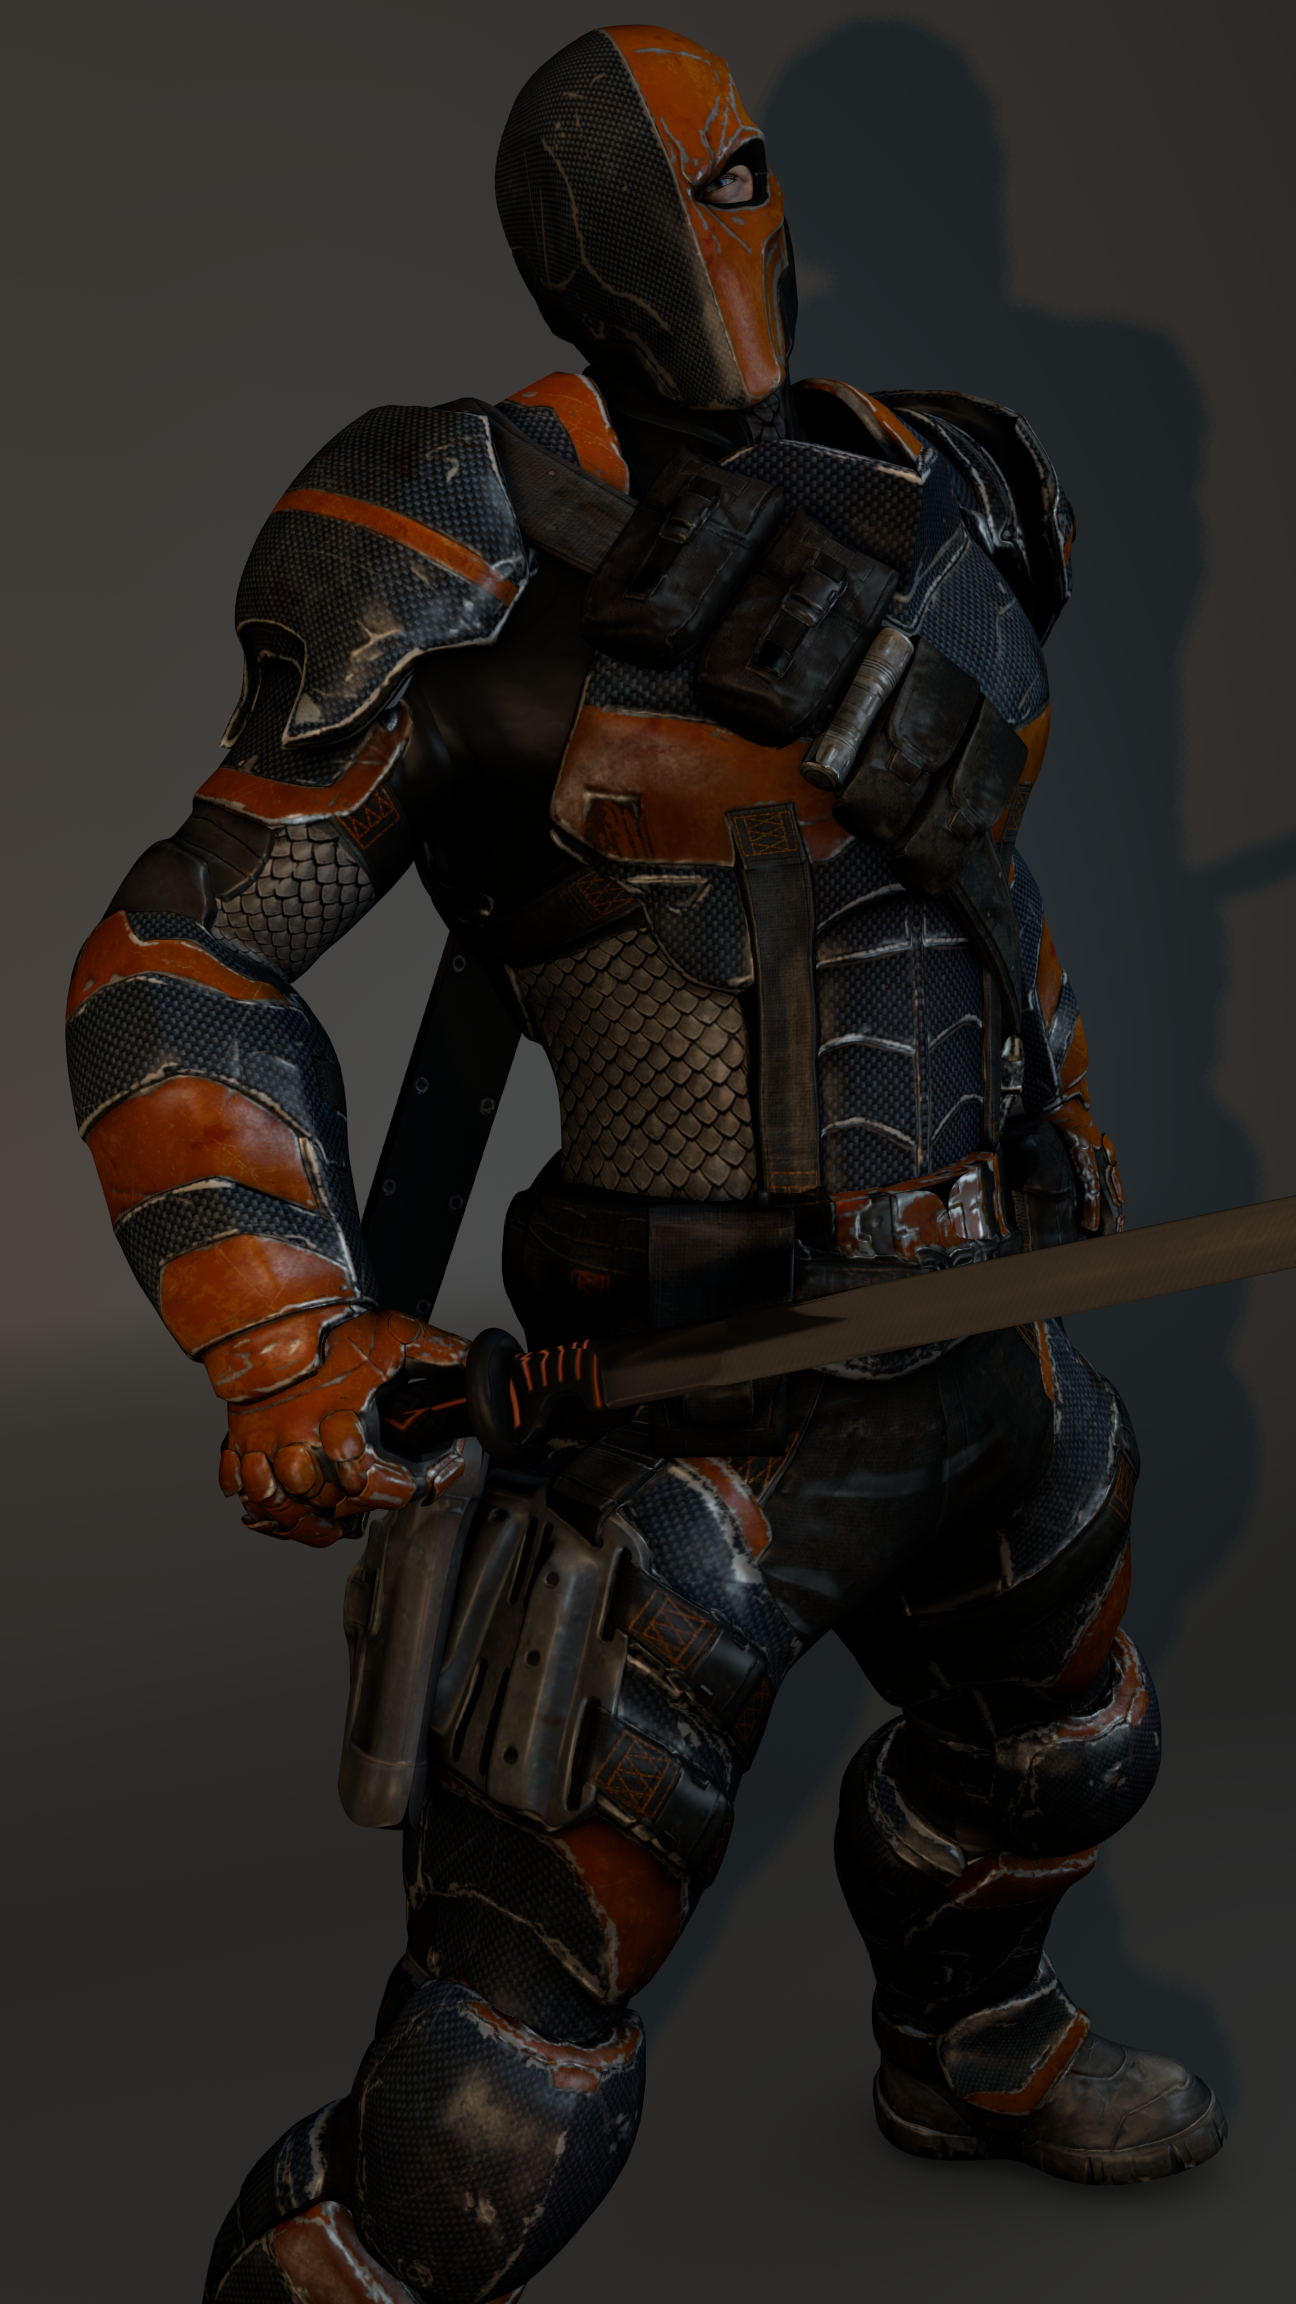 Slade wilson by zeushk on deviantart for Deathstroke armor template